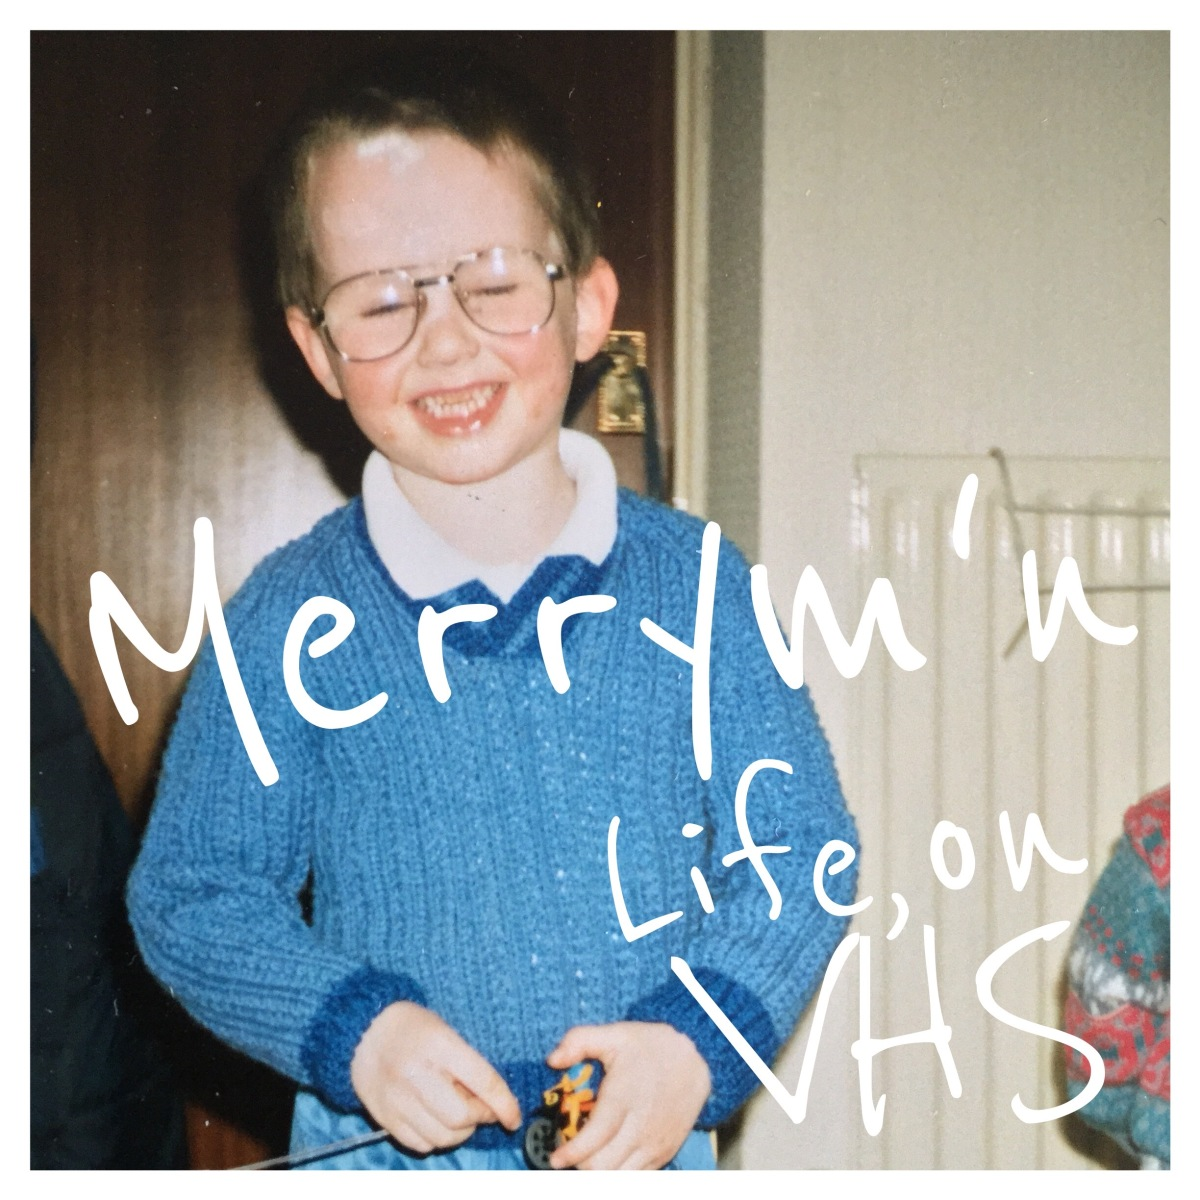 Merrym'n – 'Life, on VHS' Album Review